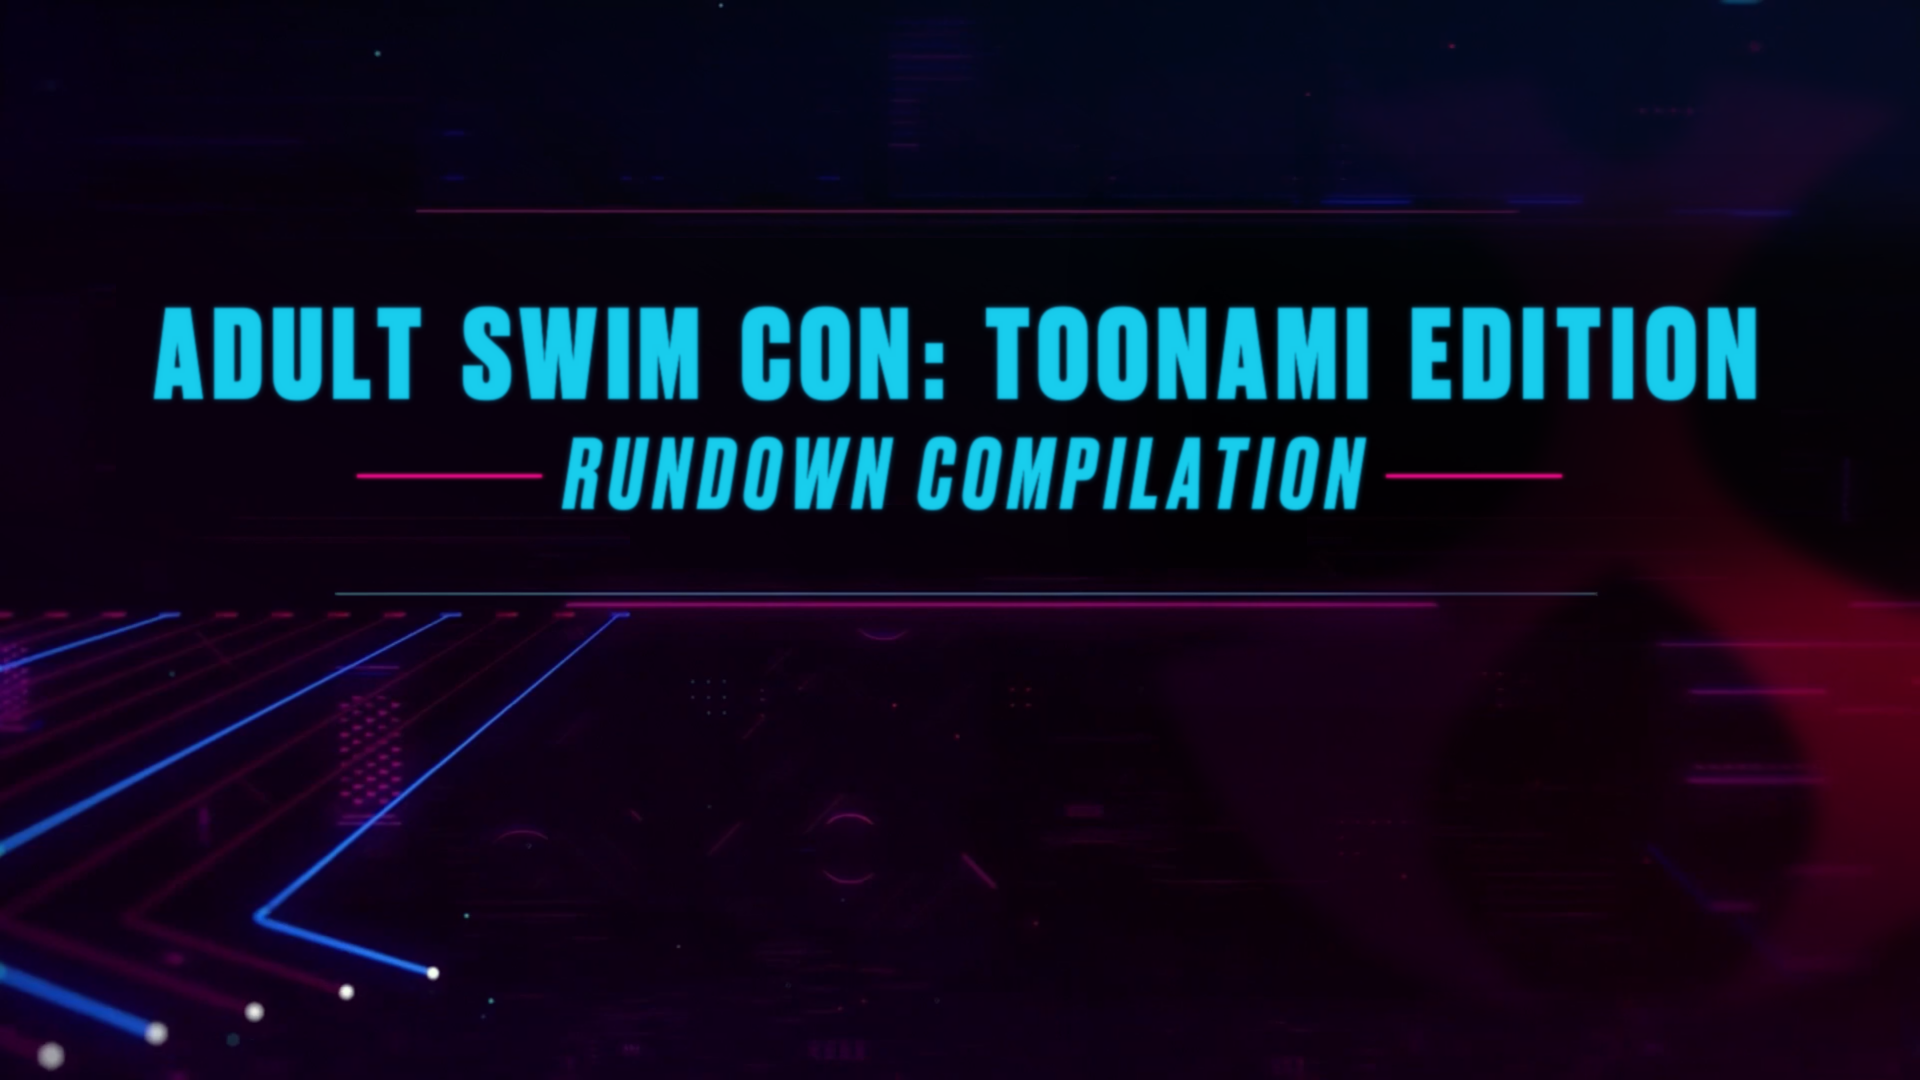 Adult Swim Con: Toonami Edition Rundown